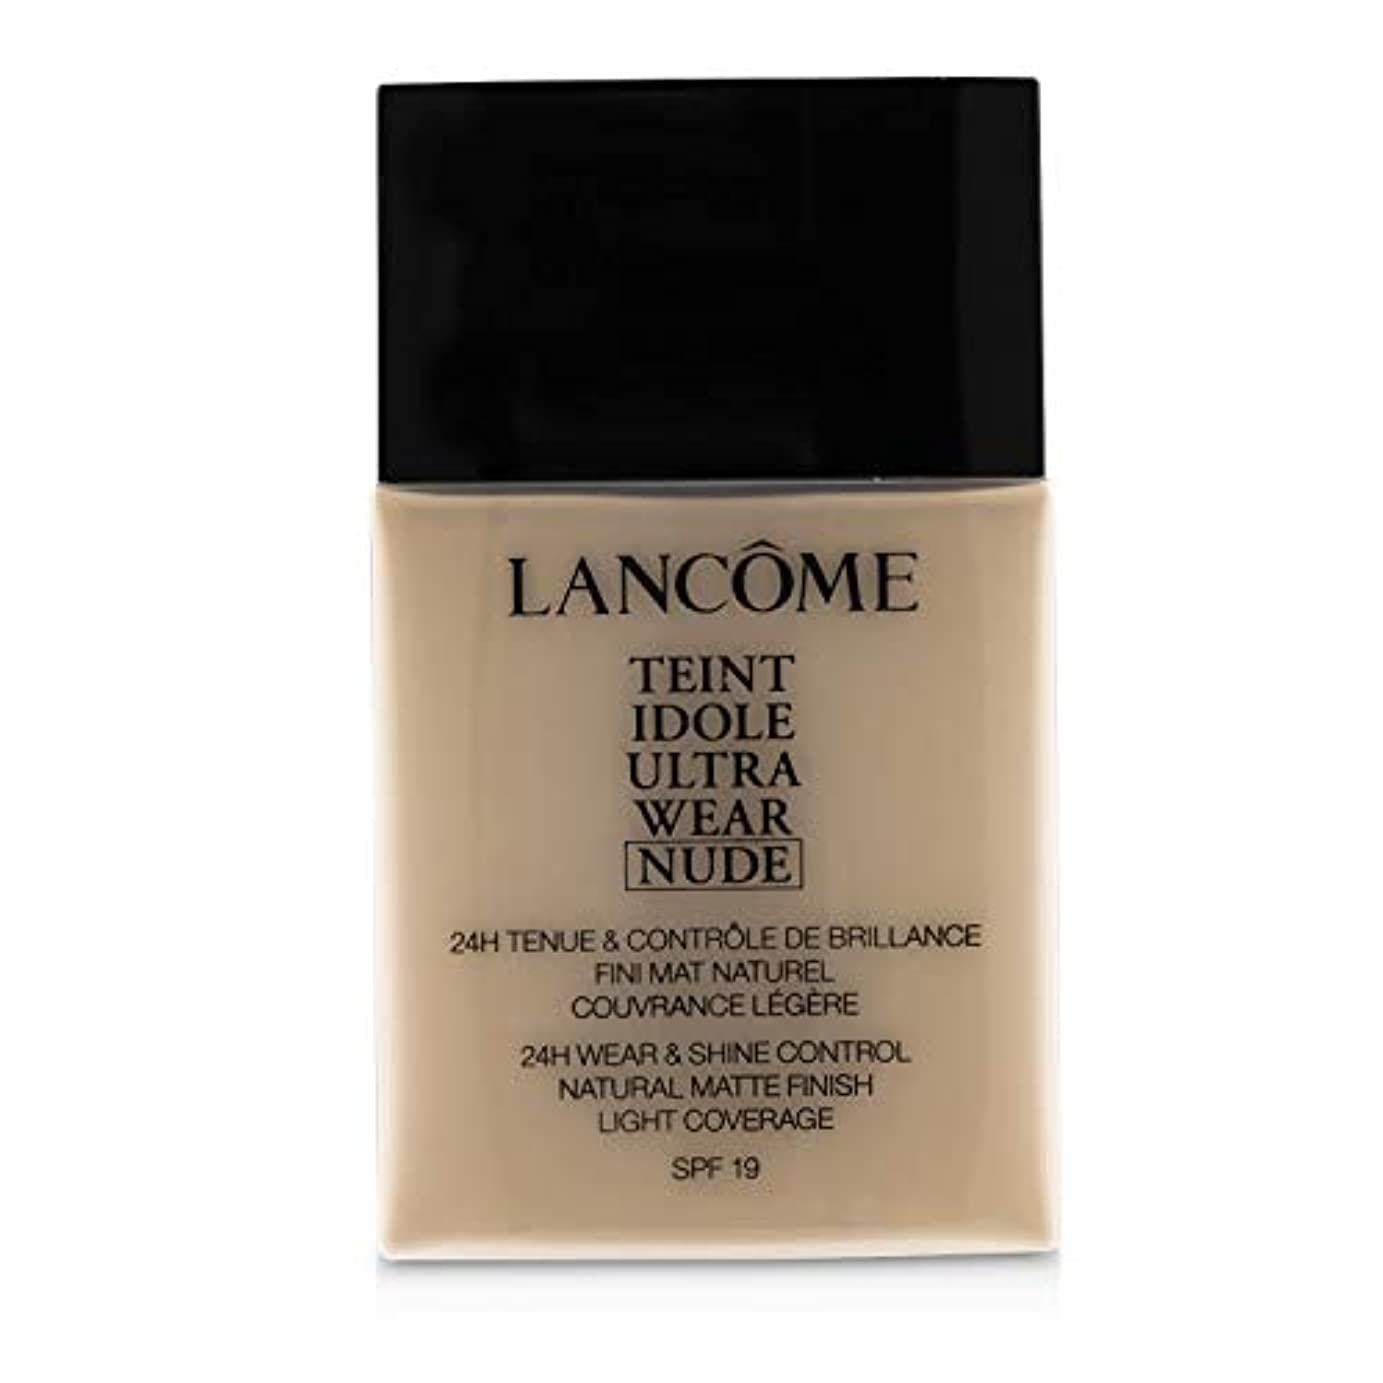 宇宙ヘア脊椎ランコム Teint Idole Ultra Wear Nude Foundation SPF19 - # 005 Beige Ivoire 40ml/1.3oz並行輸入品